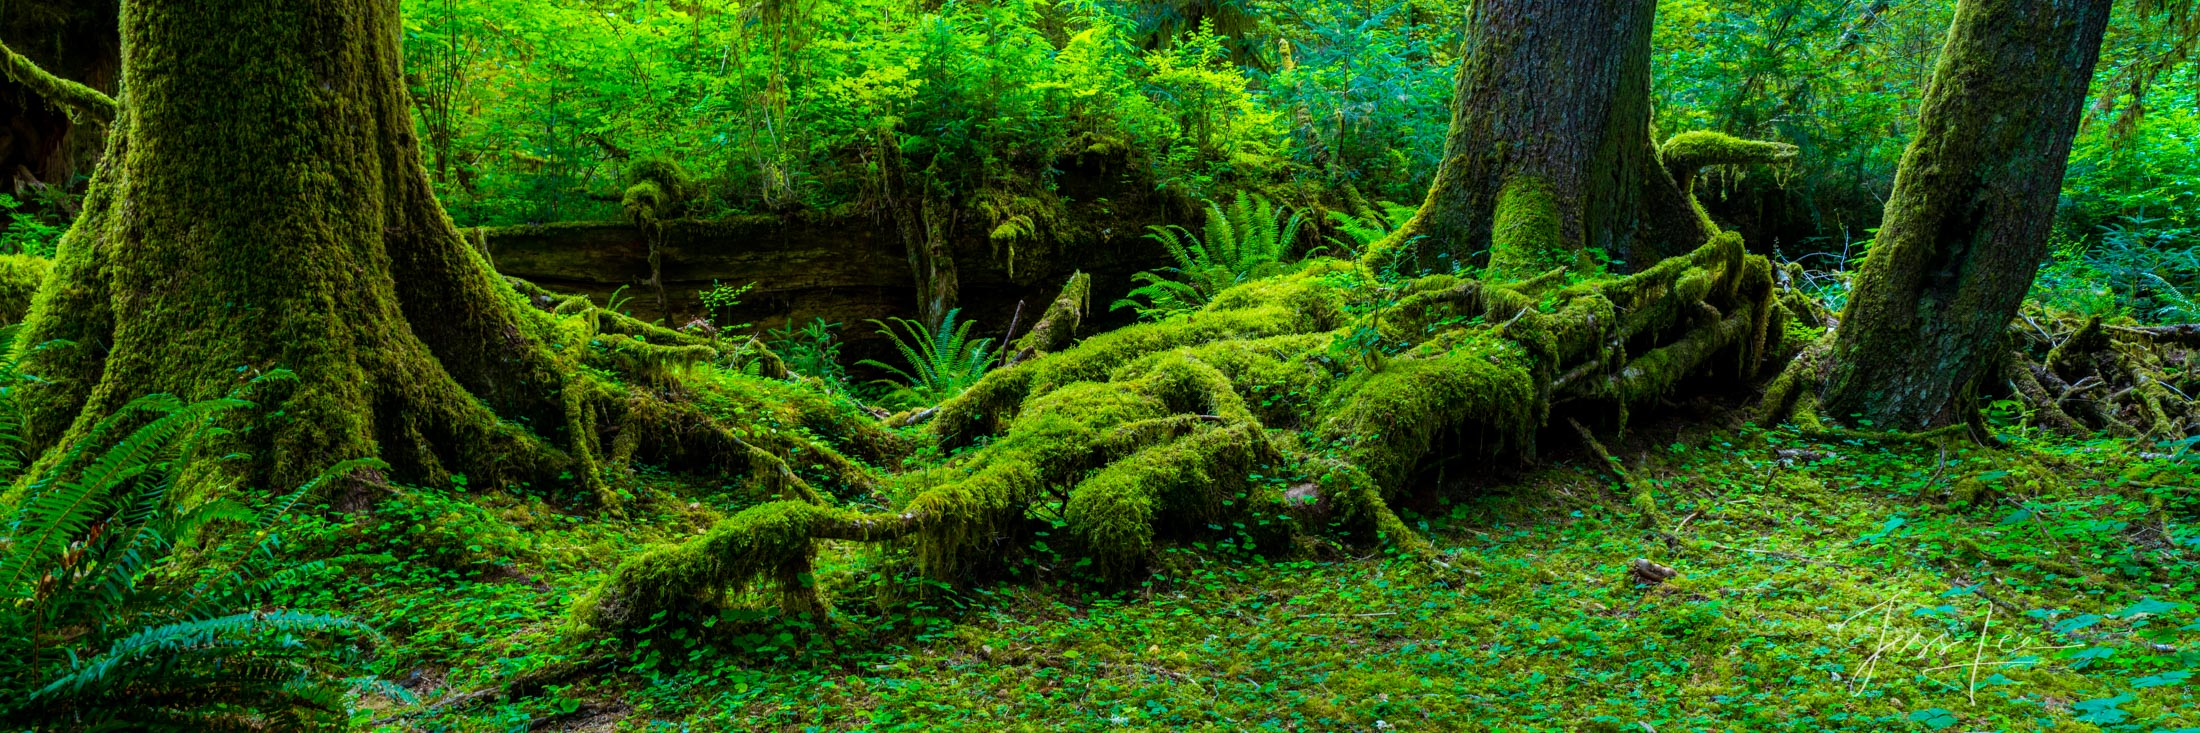 Bring the beauty of the Hoe Rainforest into your home with Jess Lee's limited edition fine art photography print Reaching Out...